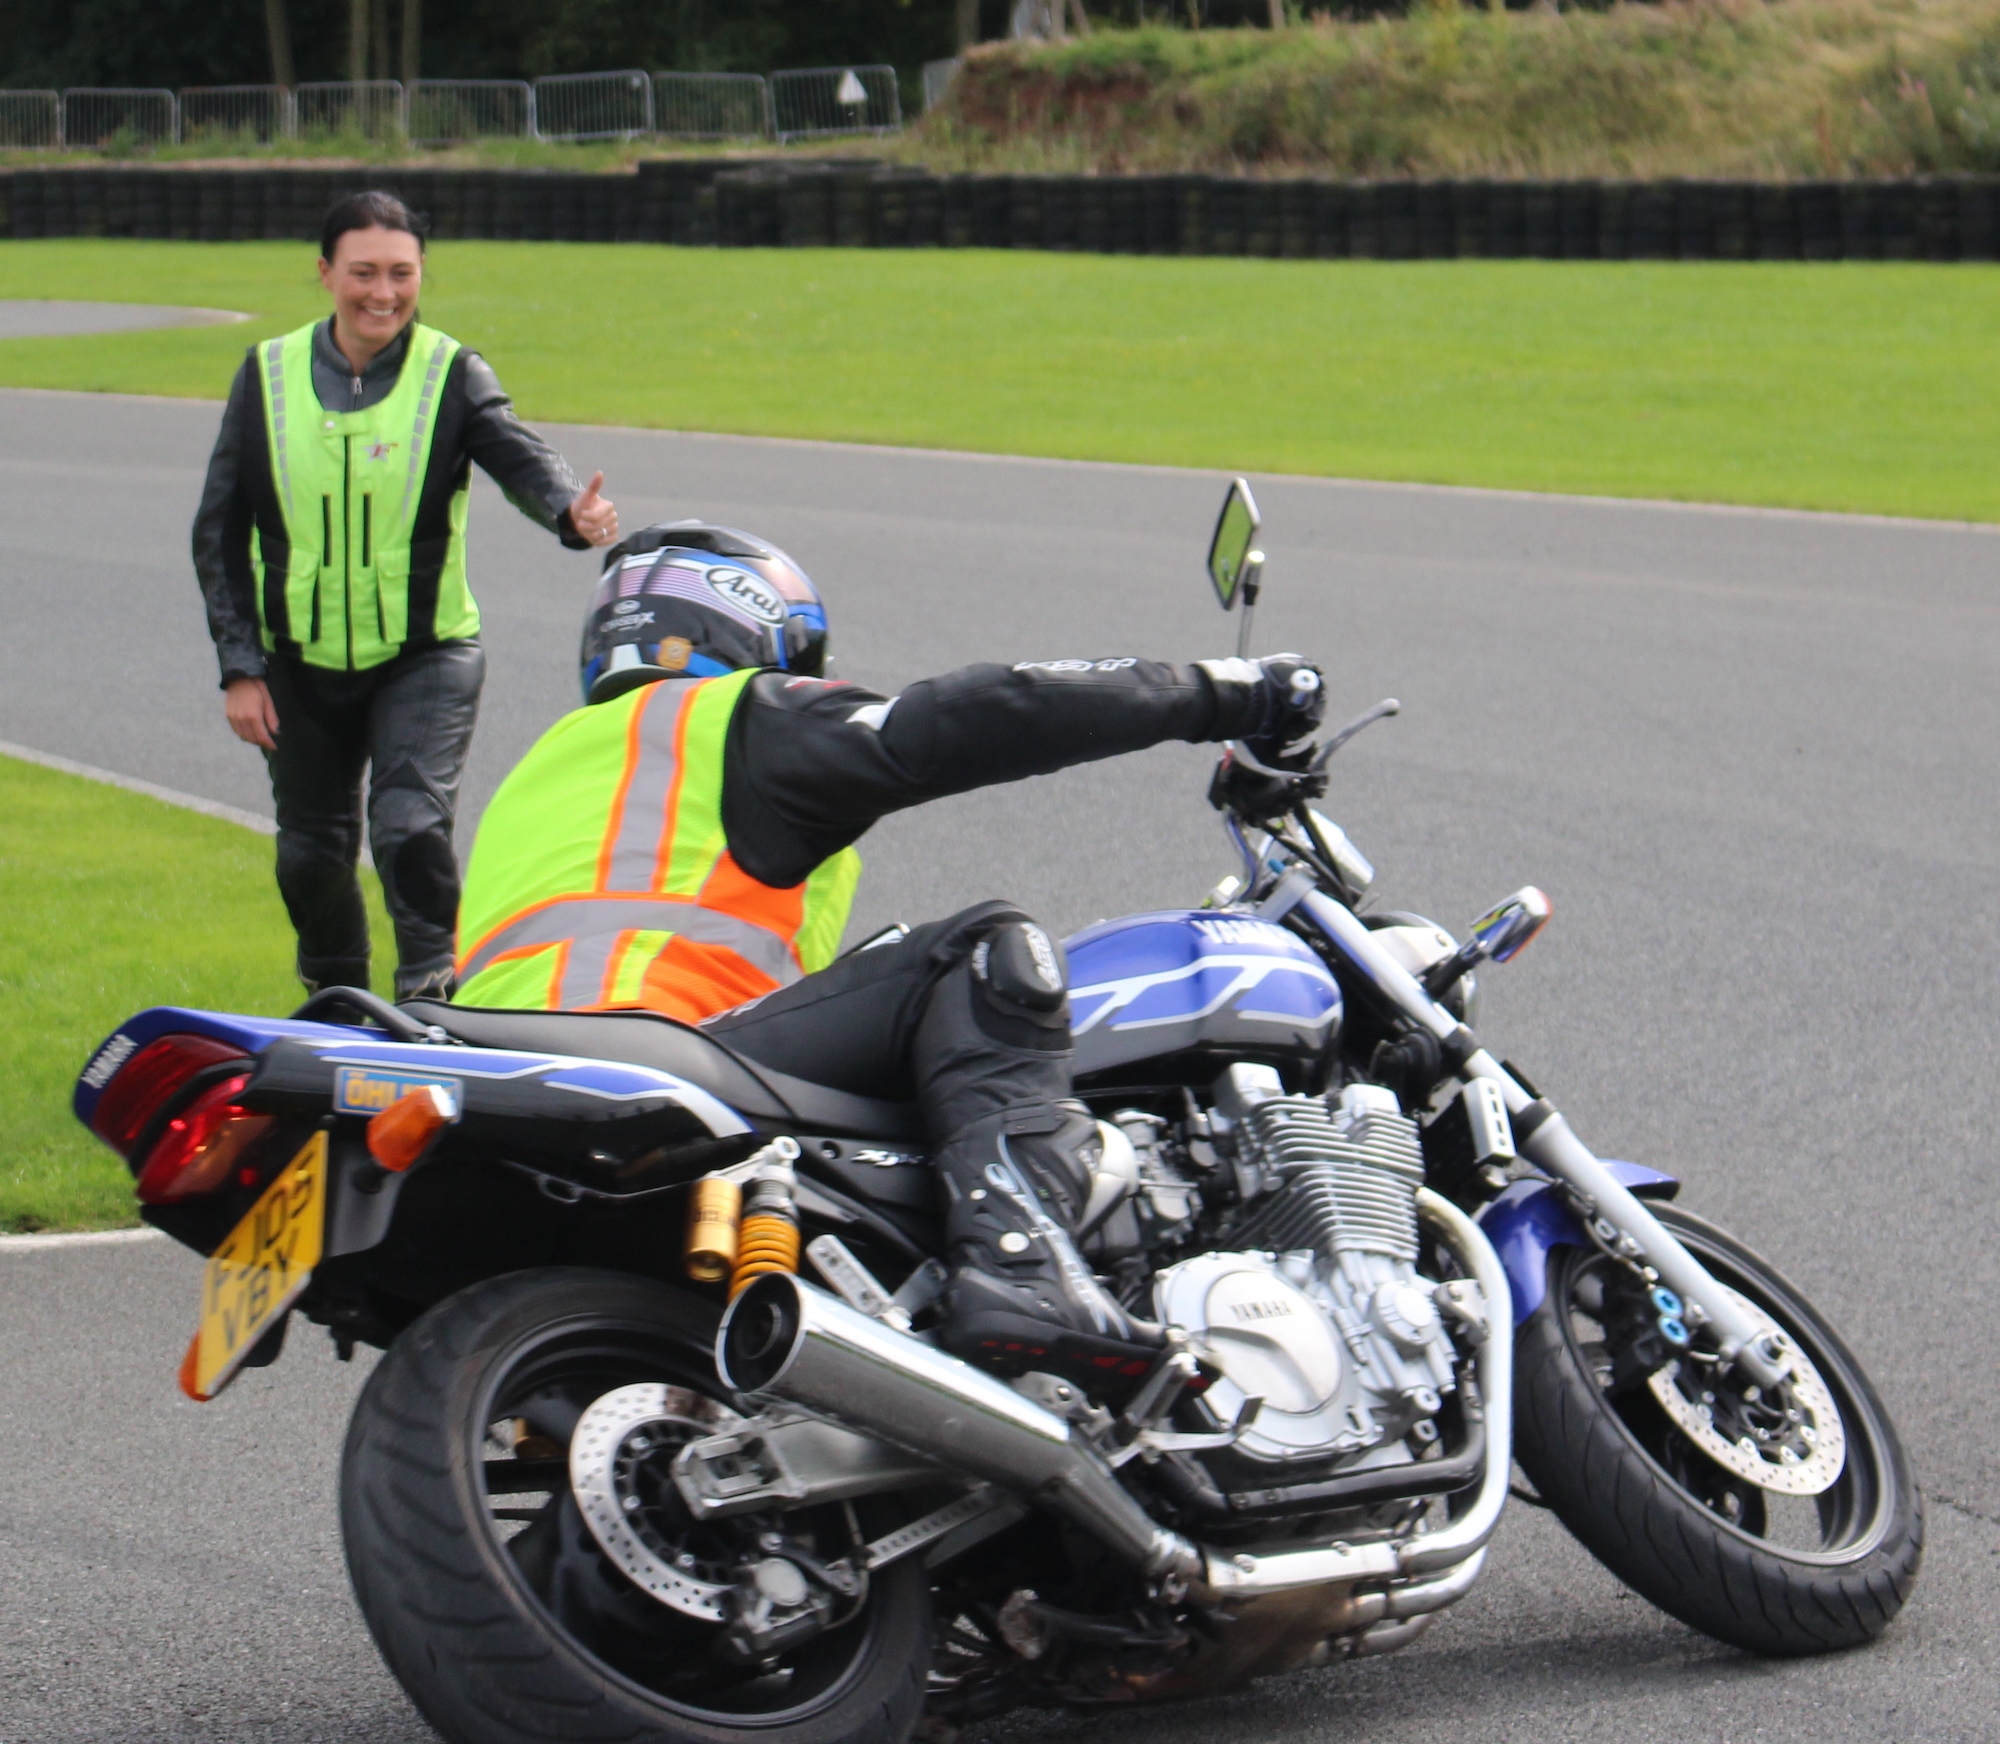 Motorbike test in Lincoln, Grantham, Banbury, Bletchley, Leighton Buzzard